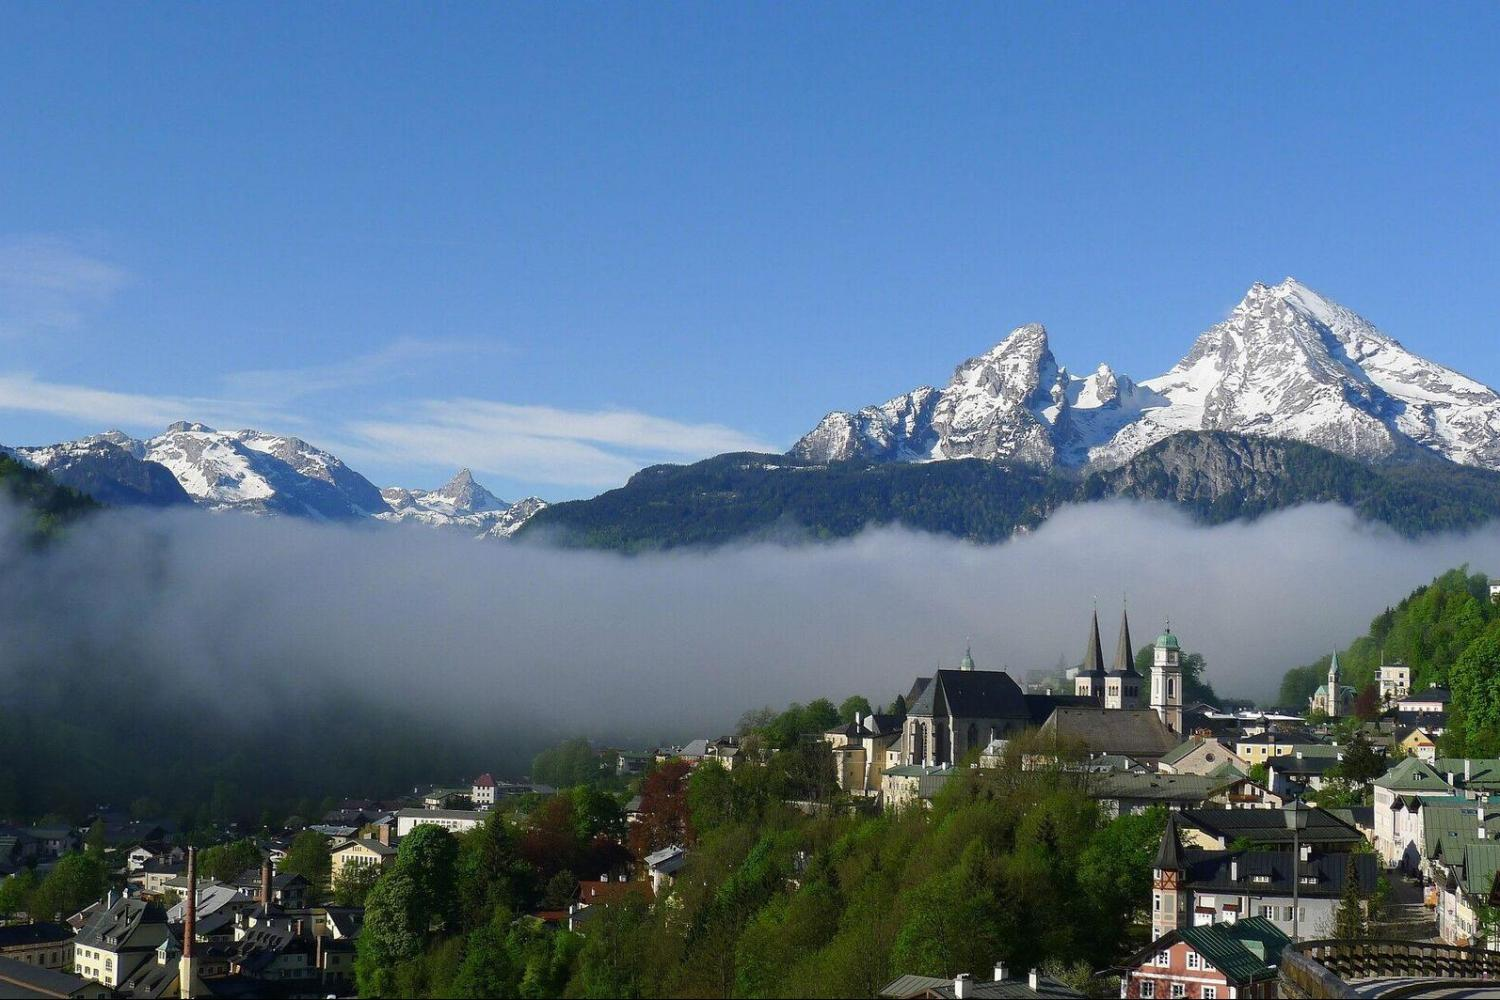 Travel high up into the Alps to the charming town of Berchtesgaden and ascend the Eagle's Nest